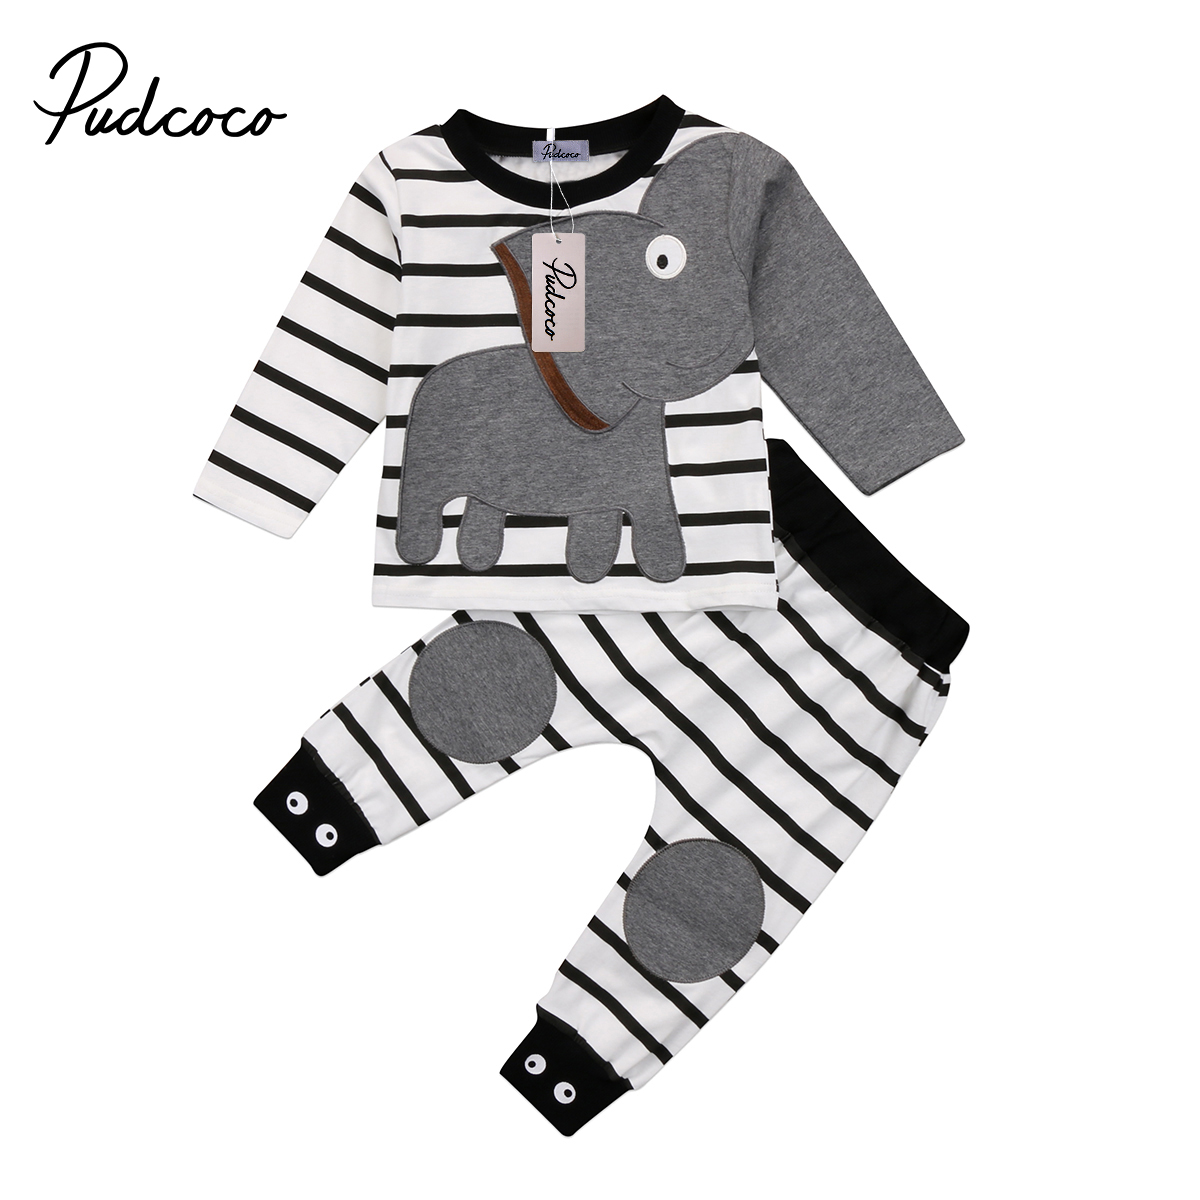 Pudcoco 2Pcs Kids Clothes Set Newborn Baby Boy Girl Long Sleeve Top Cartoon T-shirt Todd ...